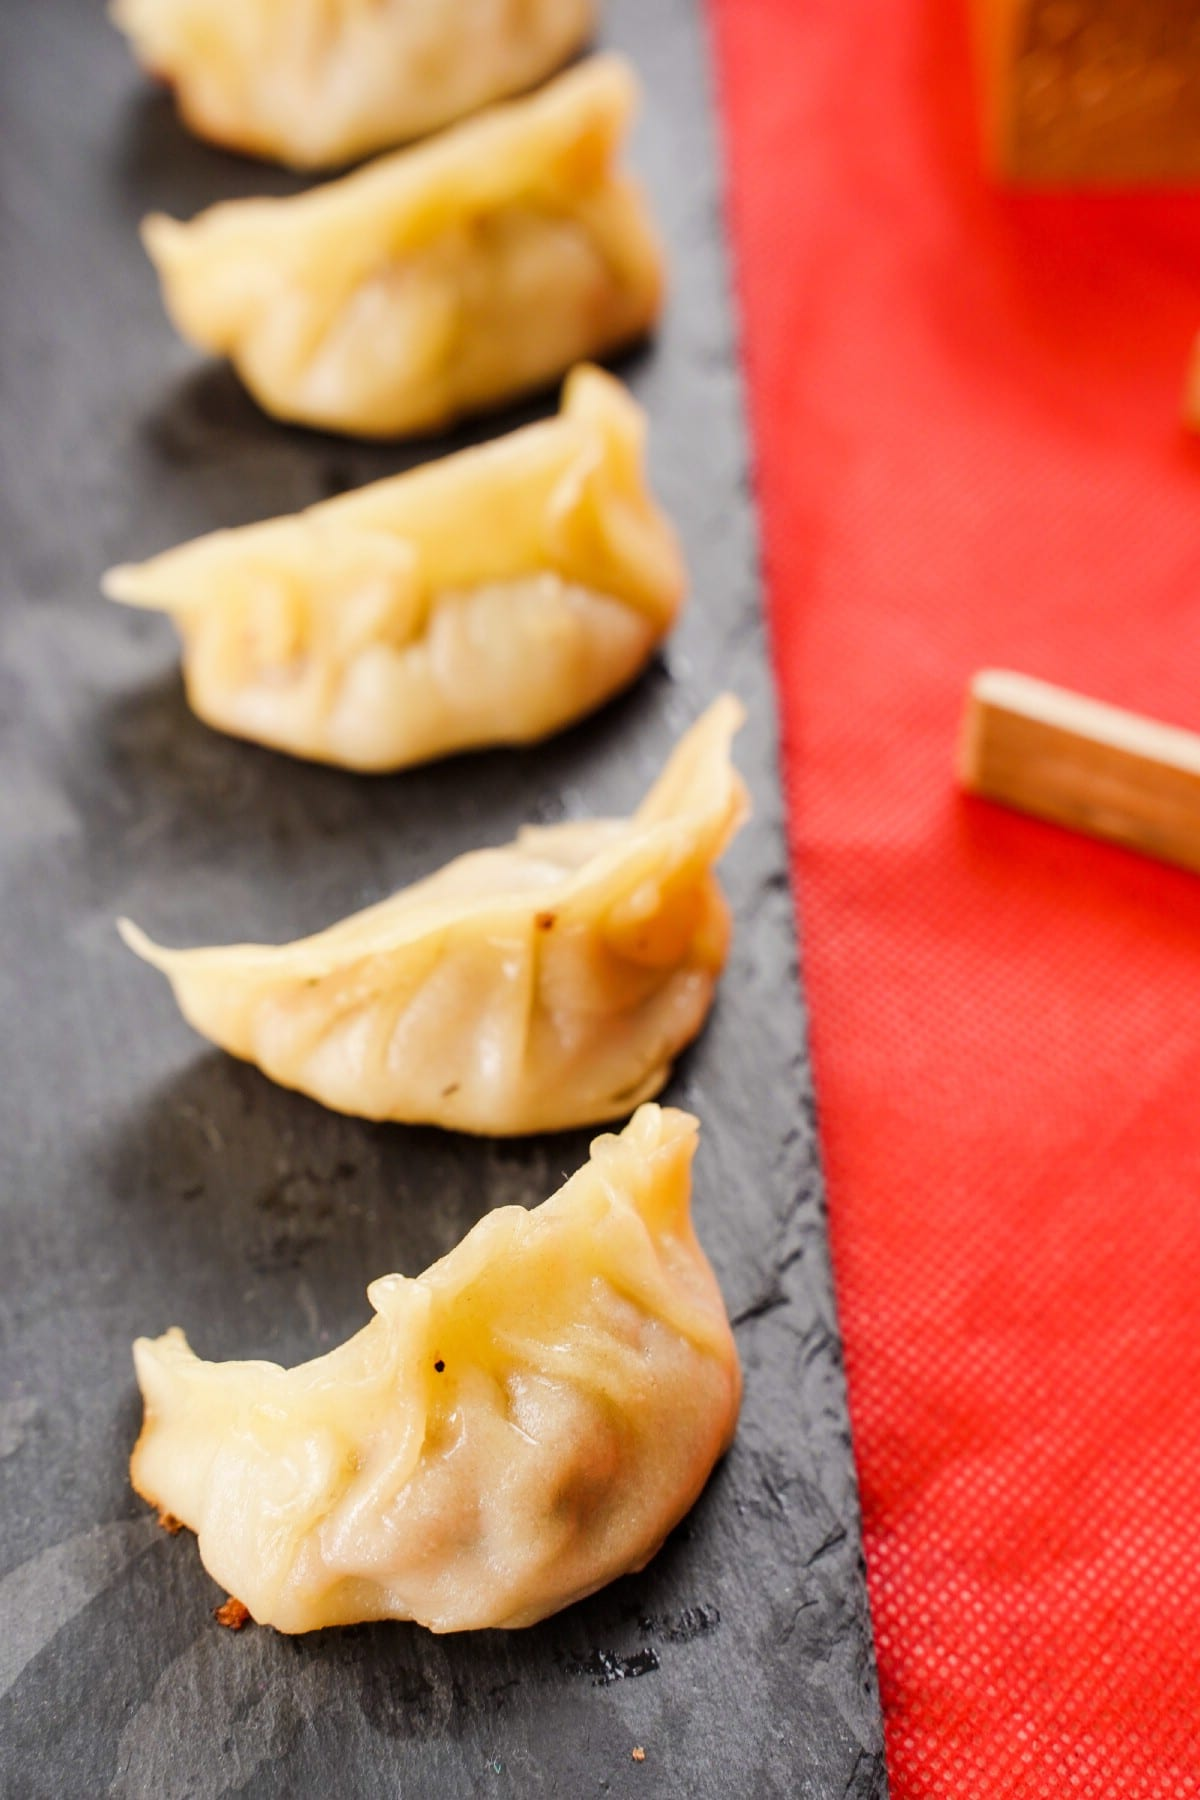 Black slate on red table topped with line of cooked dumplings